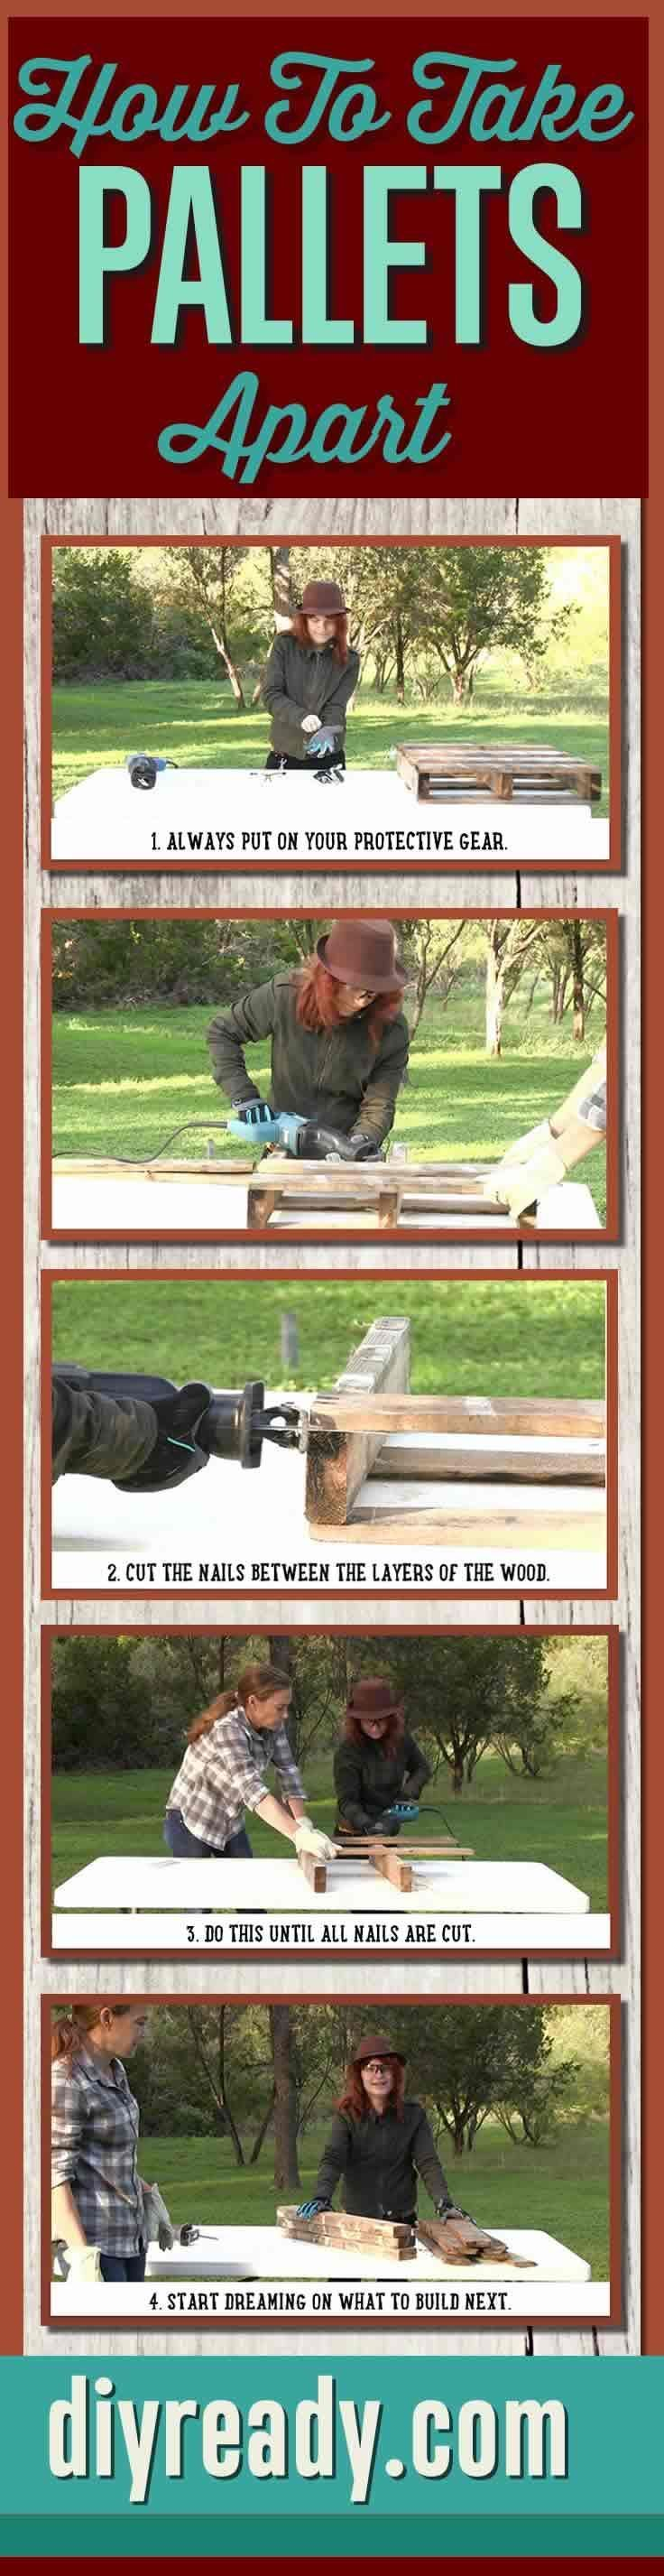 DIY Pallet Tutorial - Craft Ideas http://diyready.com/the-easy-way-to-deconstruct-a-pallet/